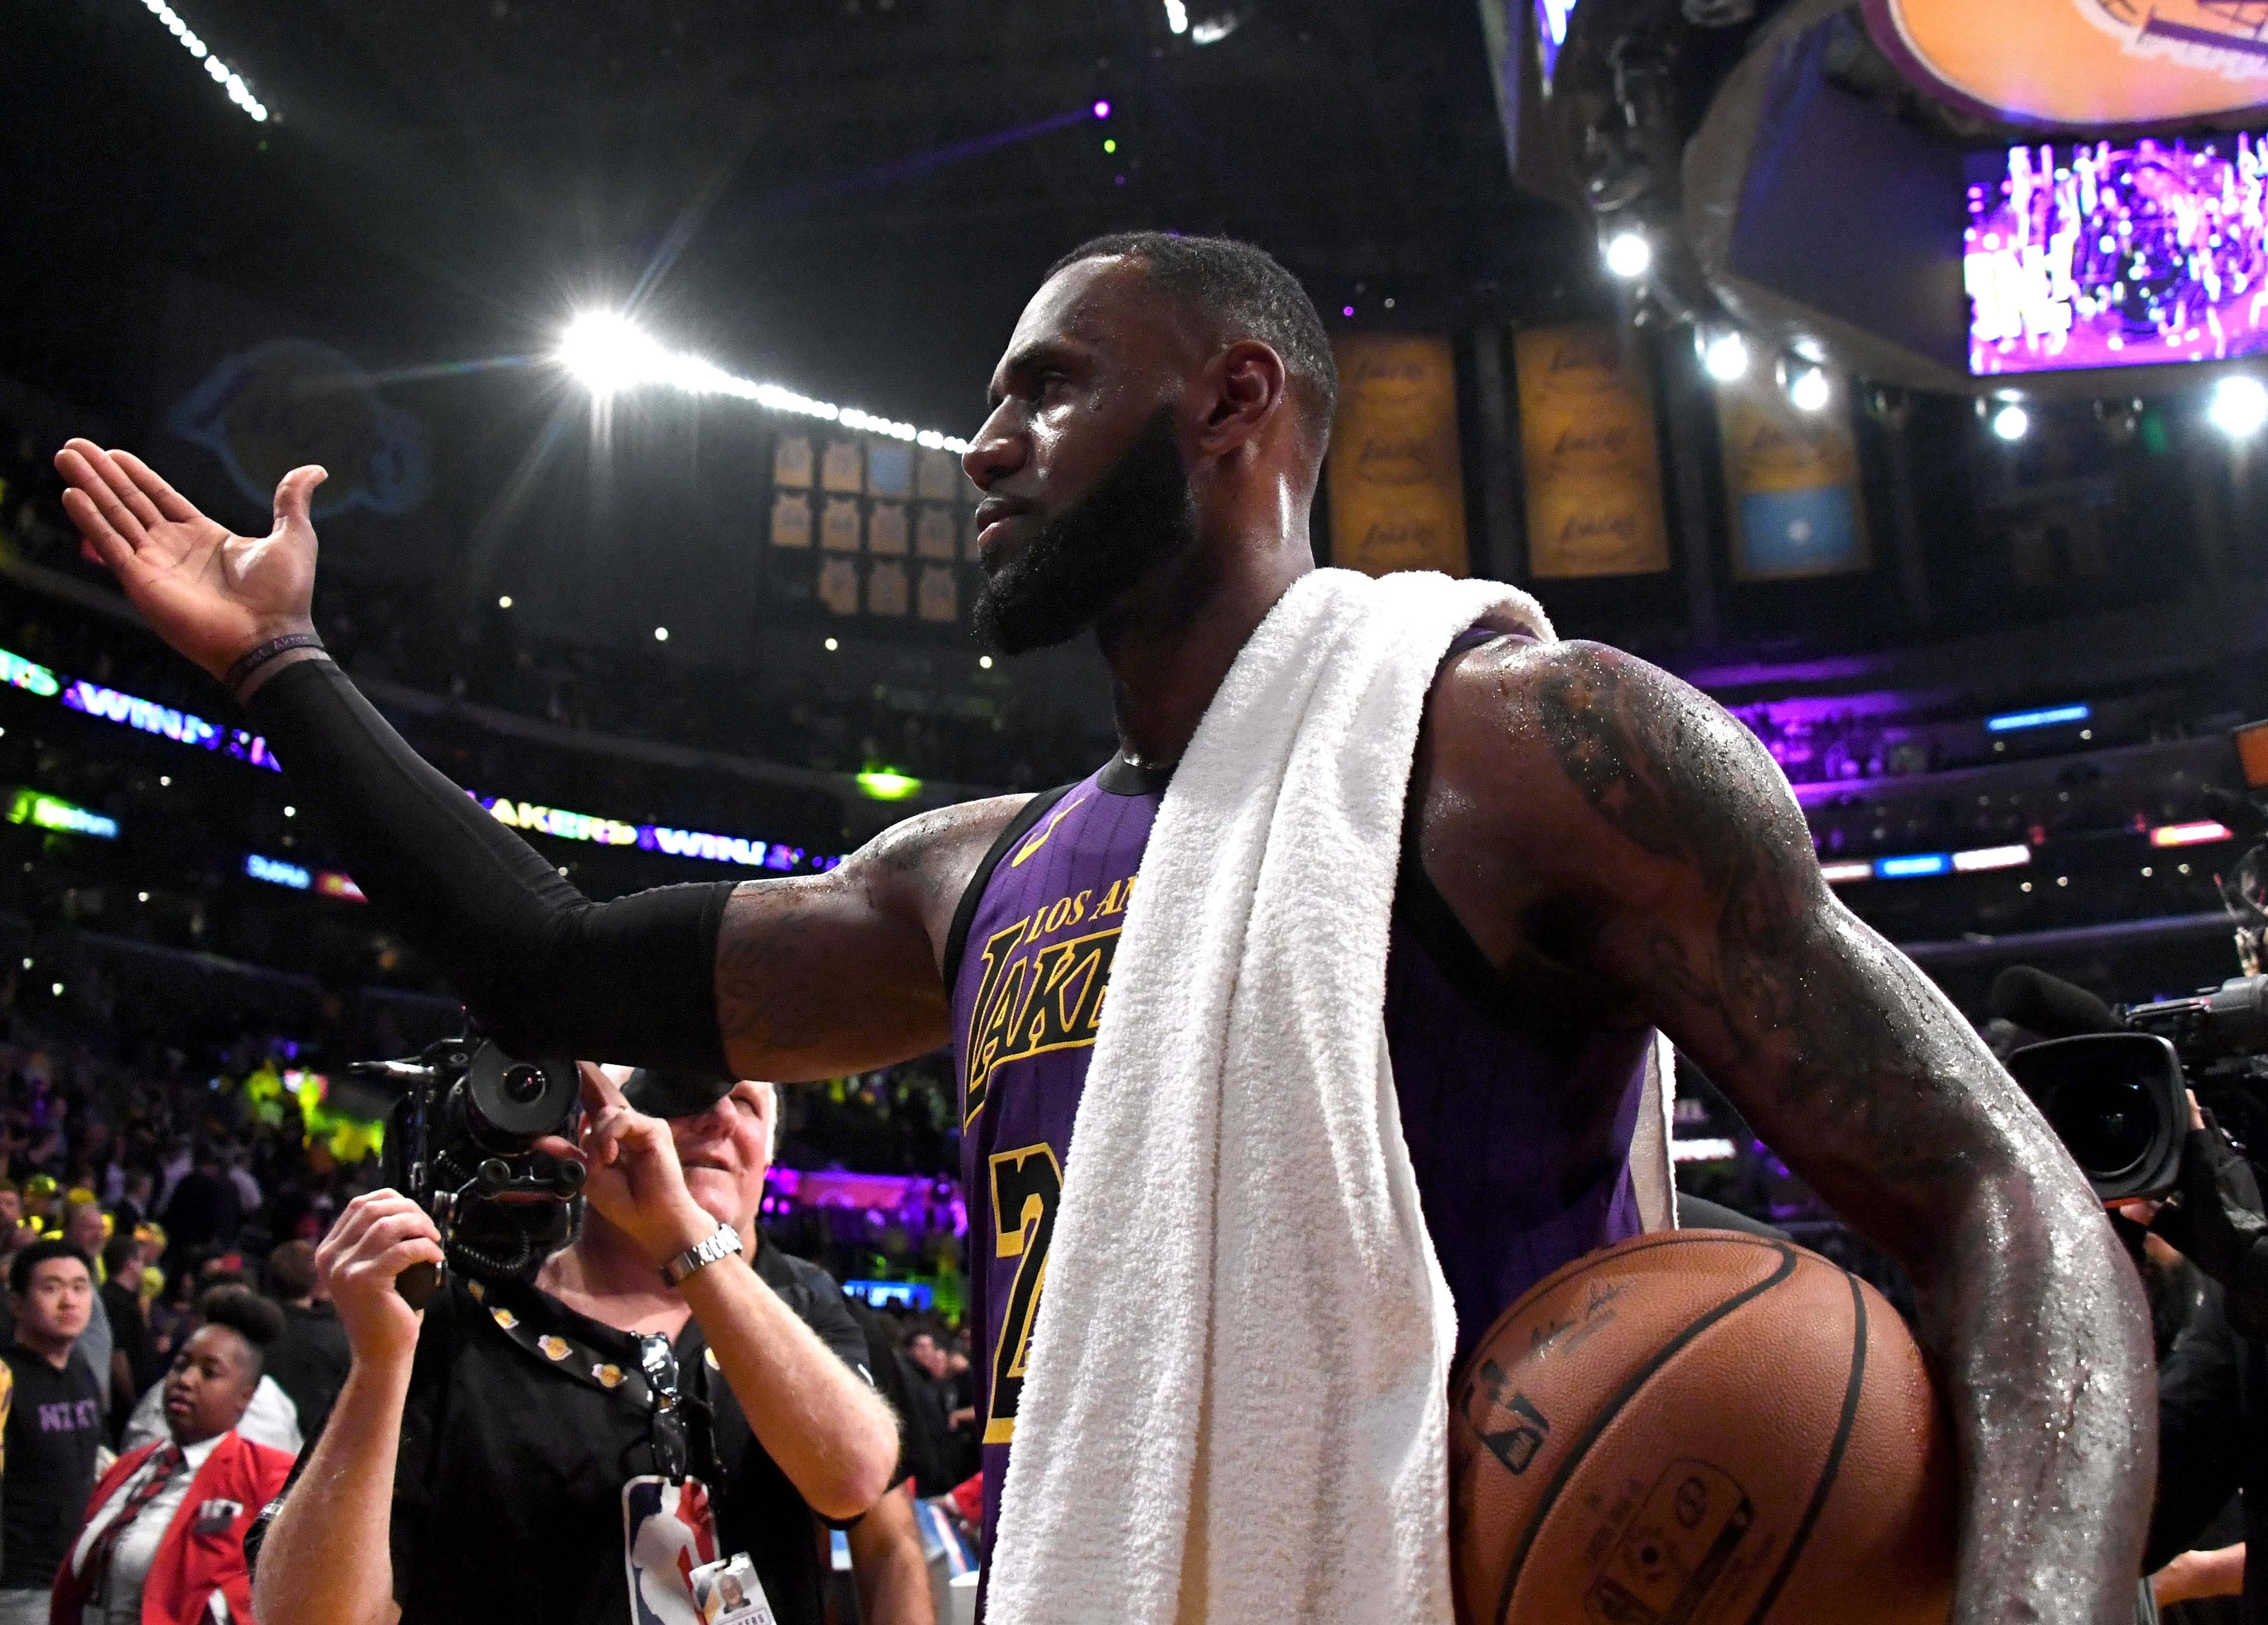 Nov. 14, 2018: LeBron James walks off the  court with the game ball after passing Wilt Chamberlain to move into fifth on the NBA's all-time career scoring list.